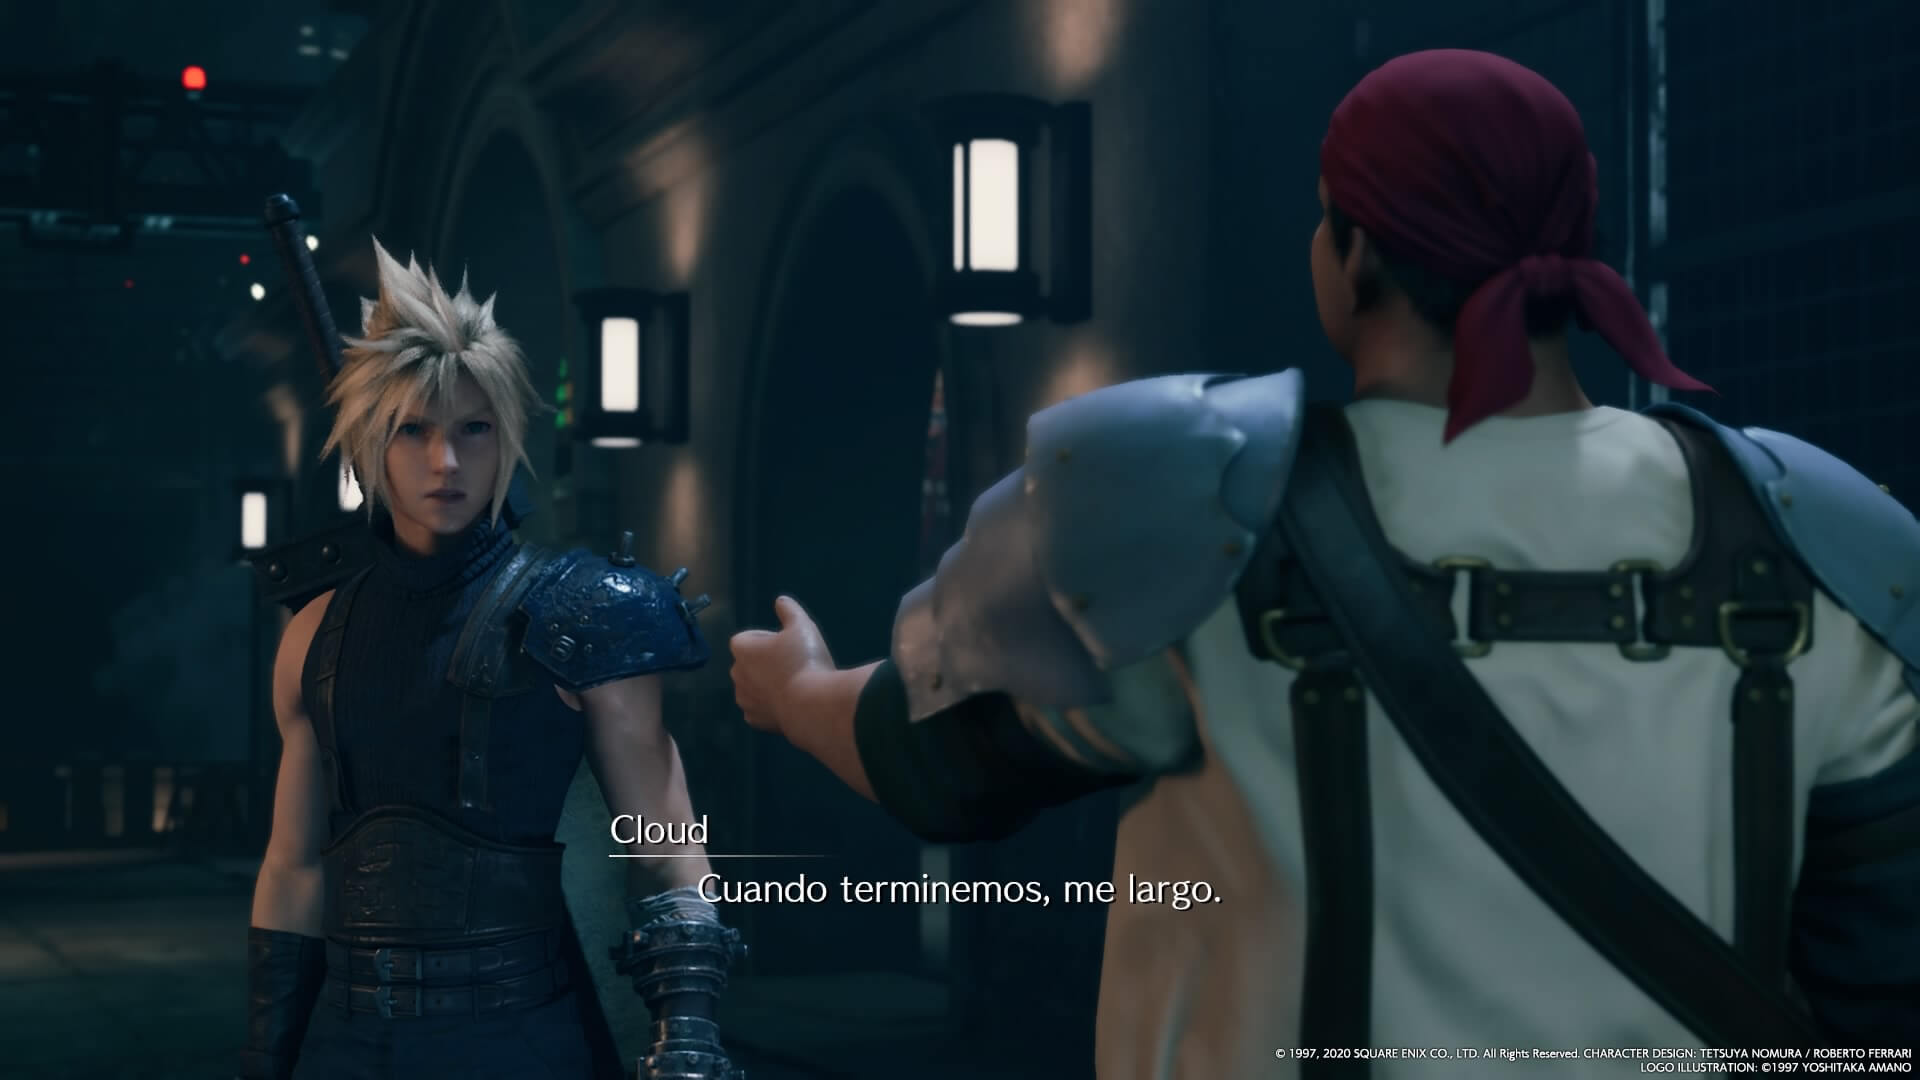 Presentación de Cloud en Final Fantasy VII Remake